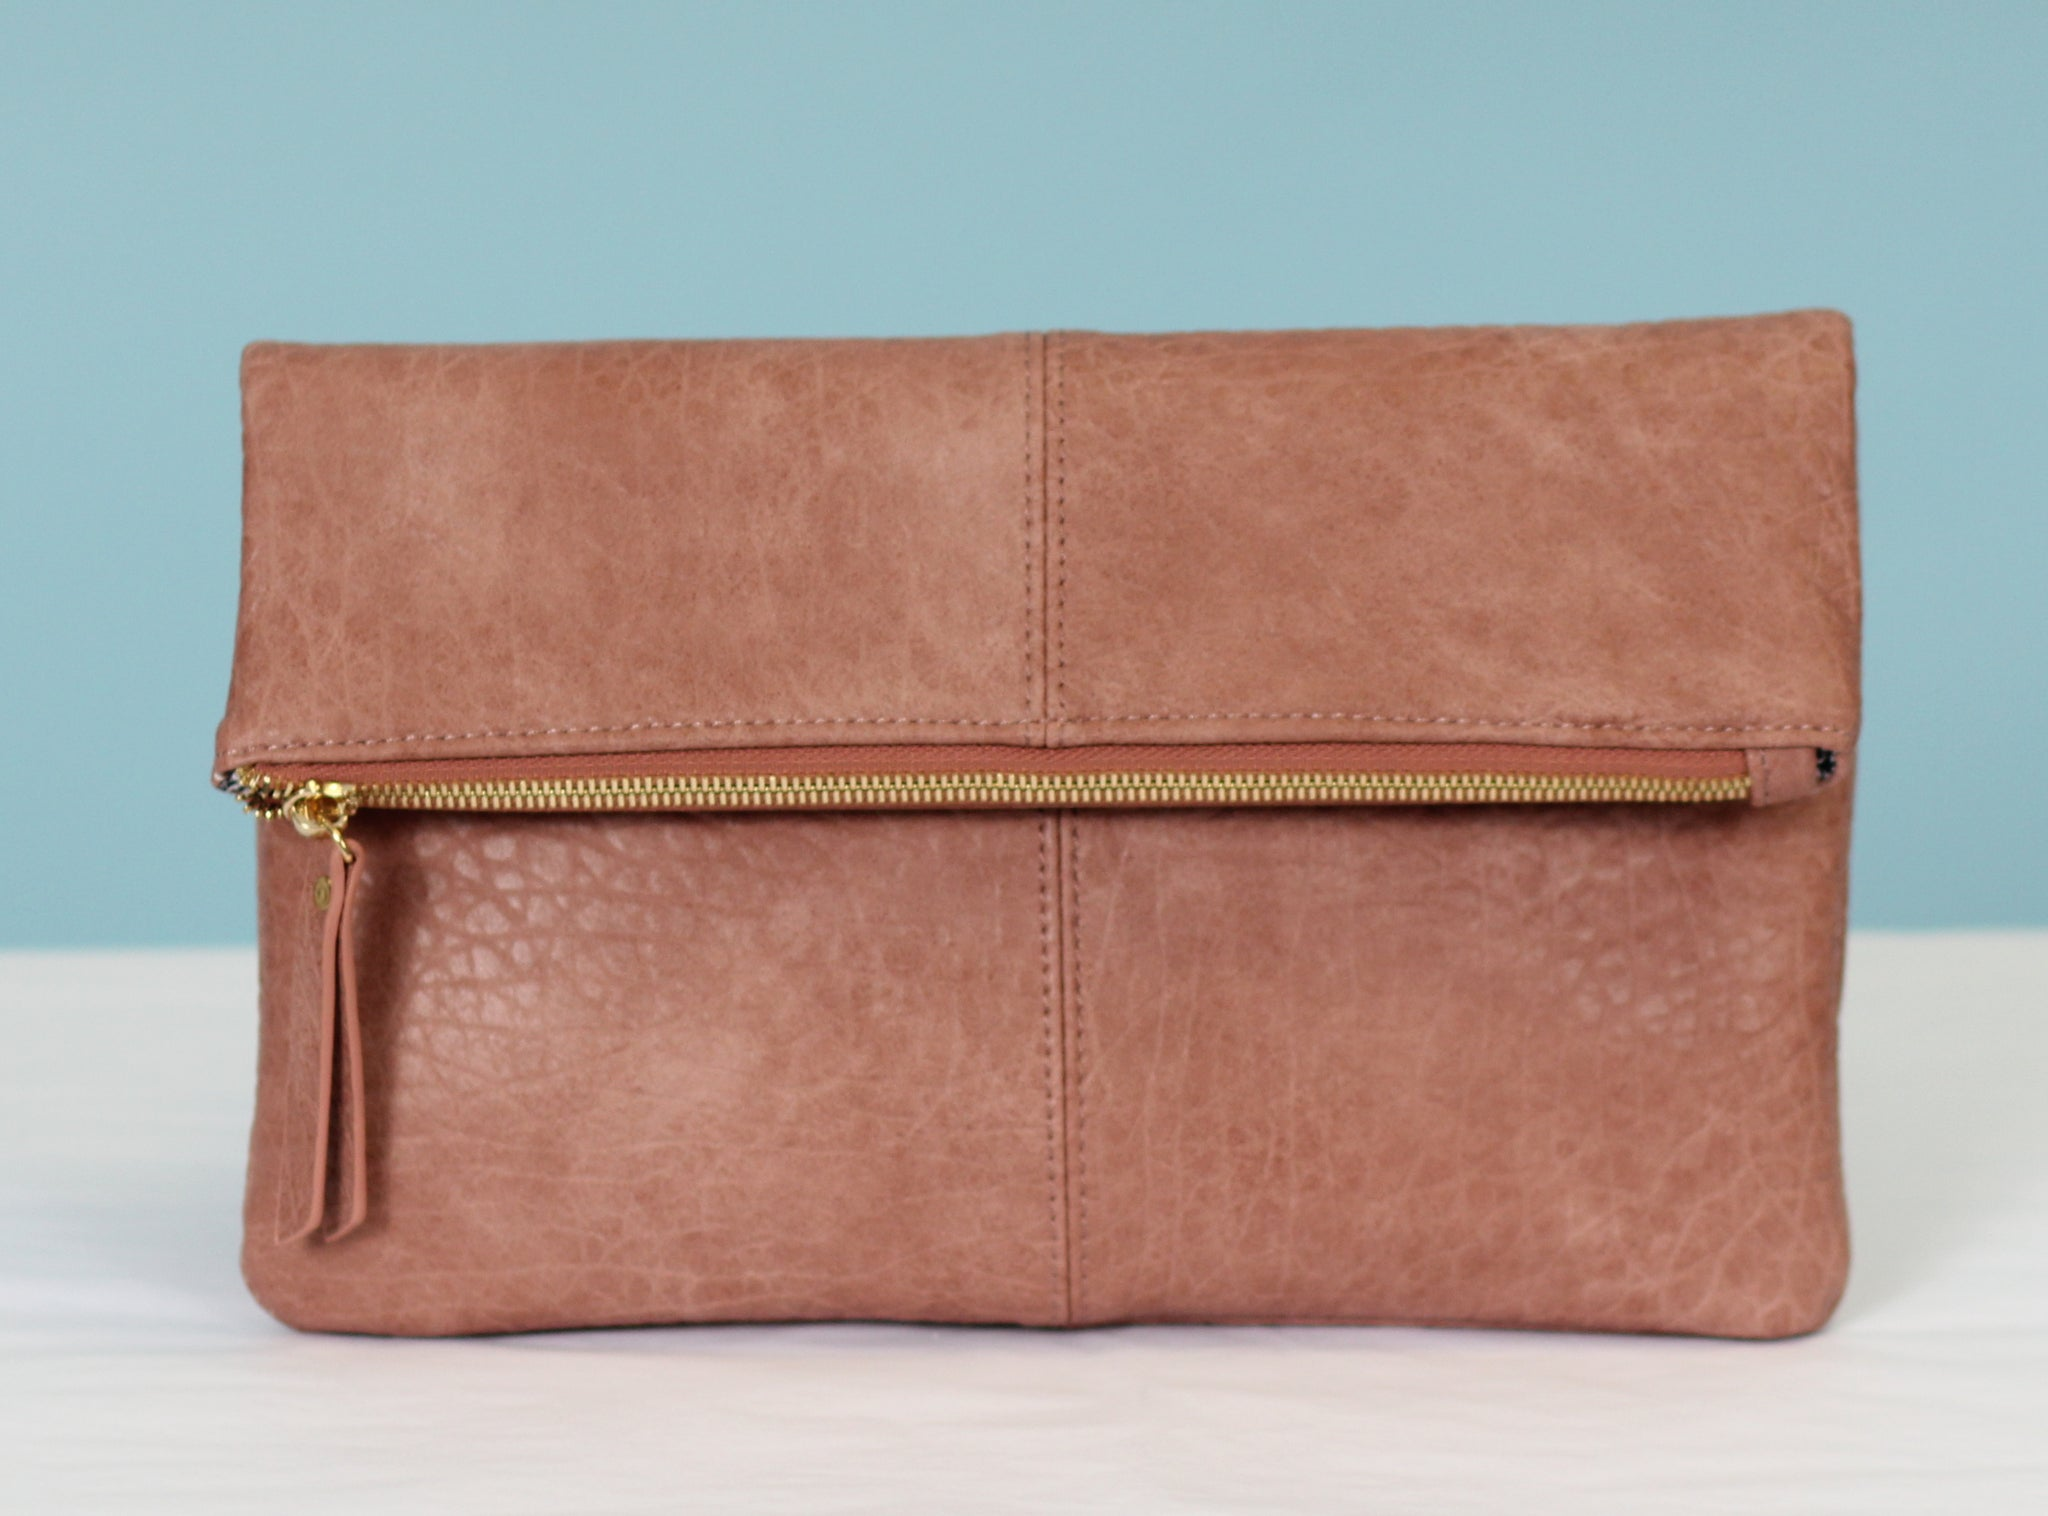 The Grace Clutch